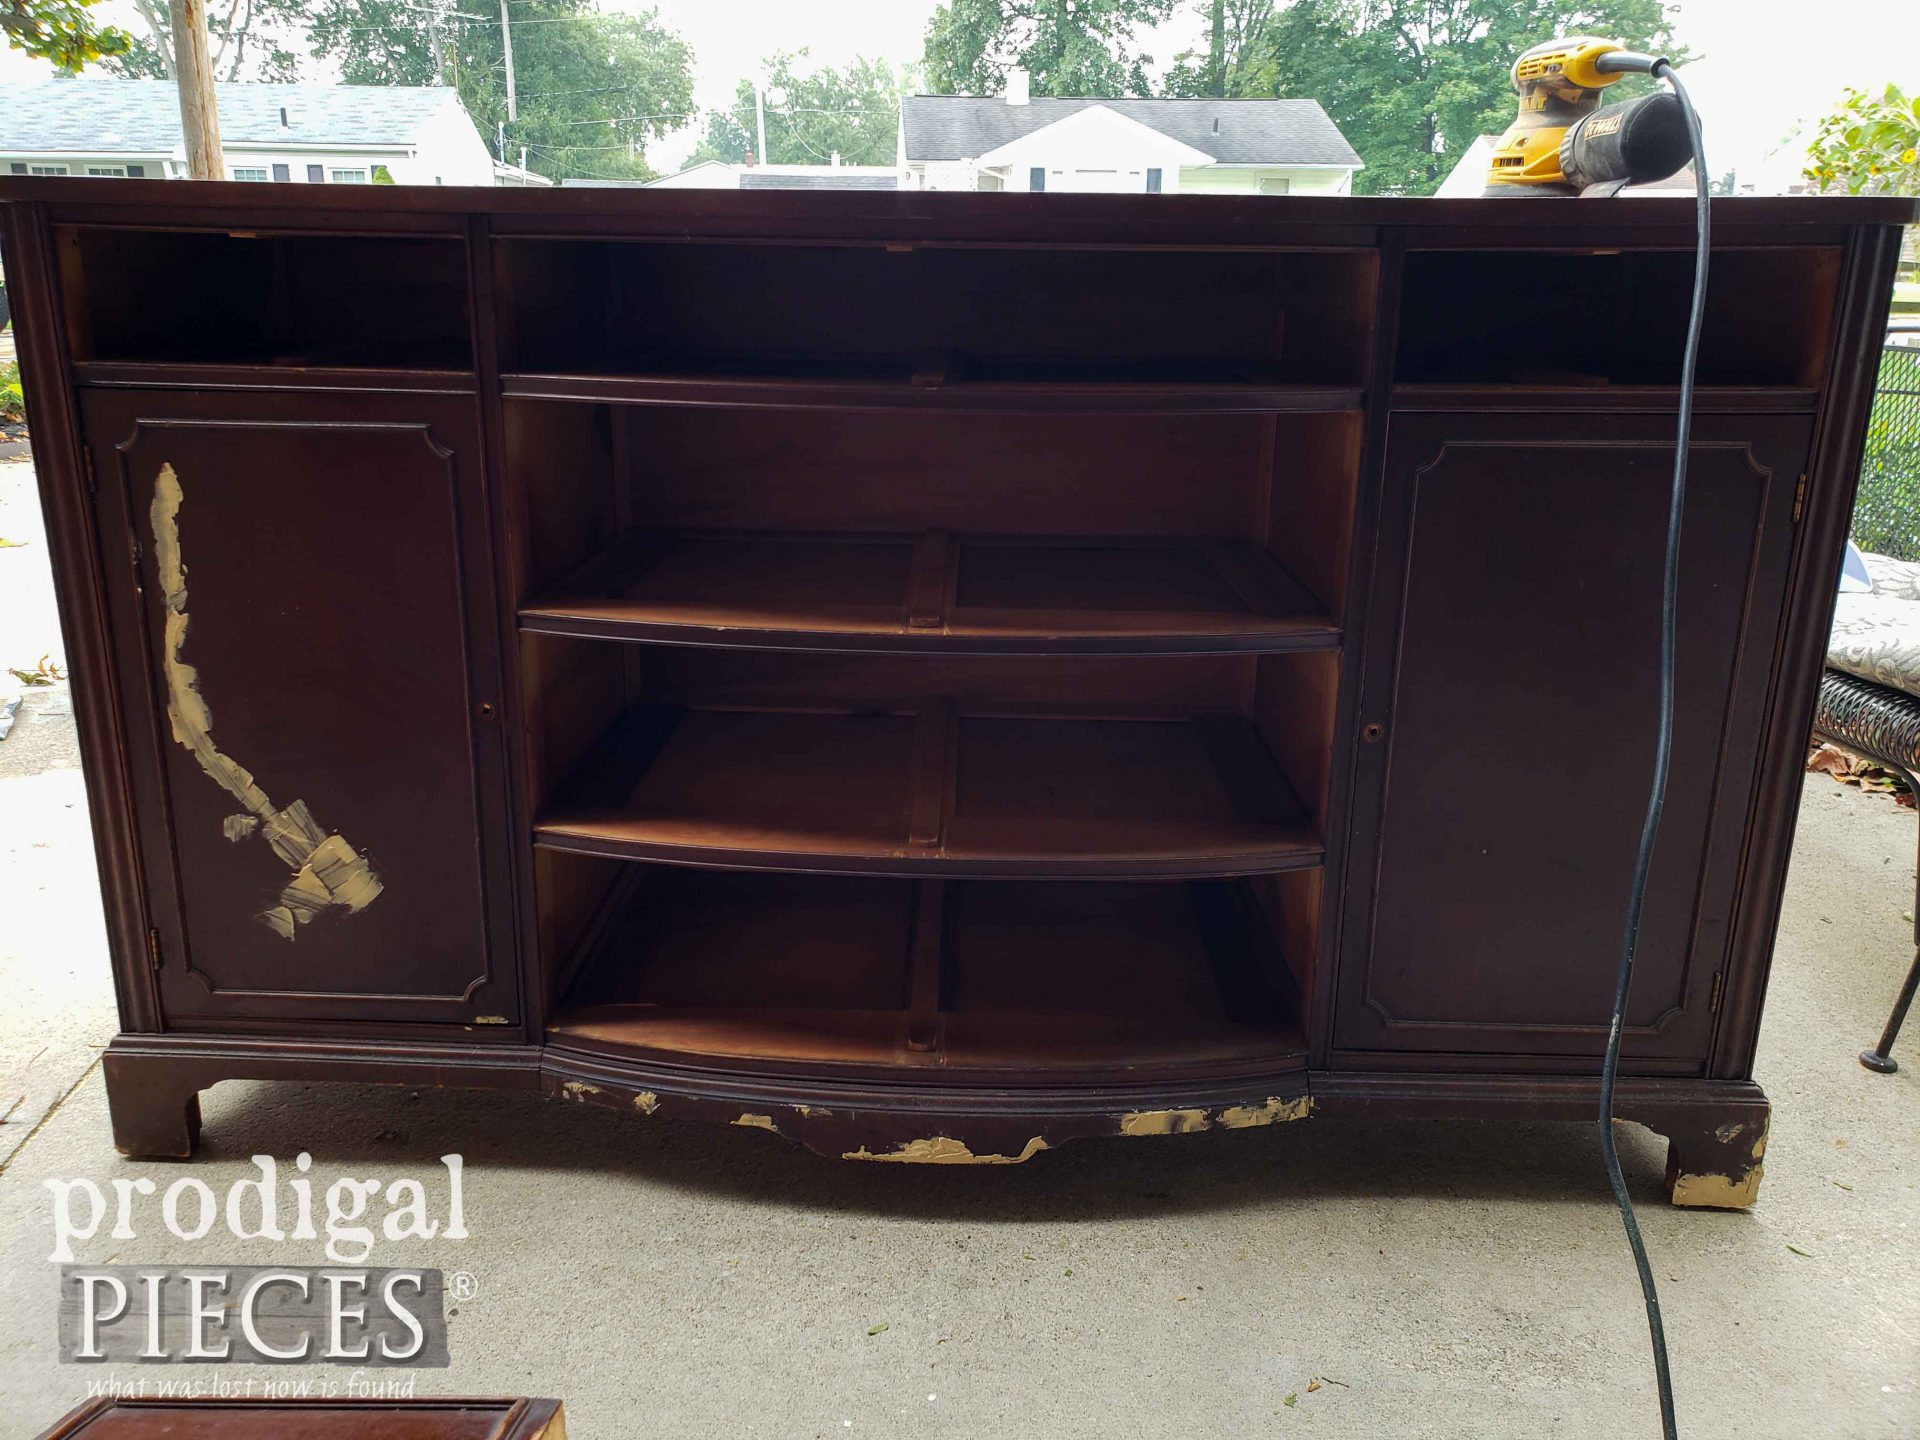 Vintage Buffet with Repairs | prodigalpieces.com